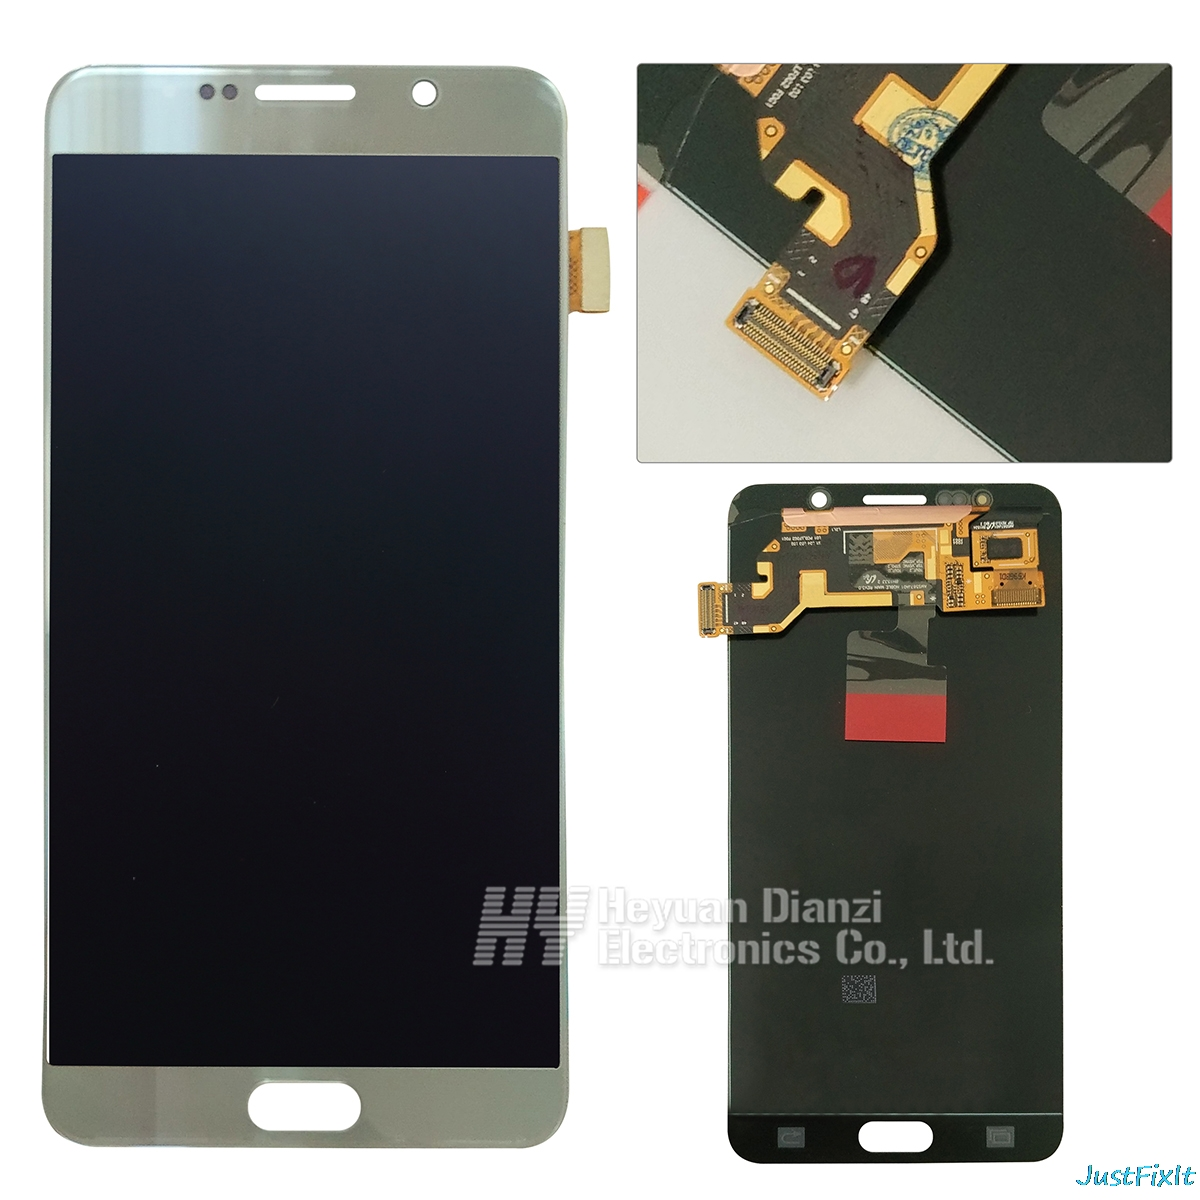 For Samsung Galaxy Note 5 N920 N920F N920A N920T N920C N920V N920W8 Burn-in shadow LCD Display Touch Screen Digitizer Assembly